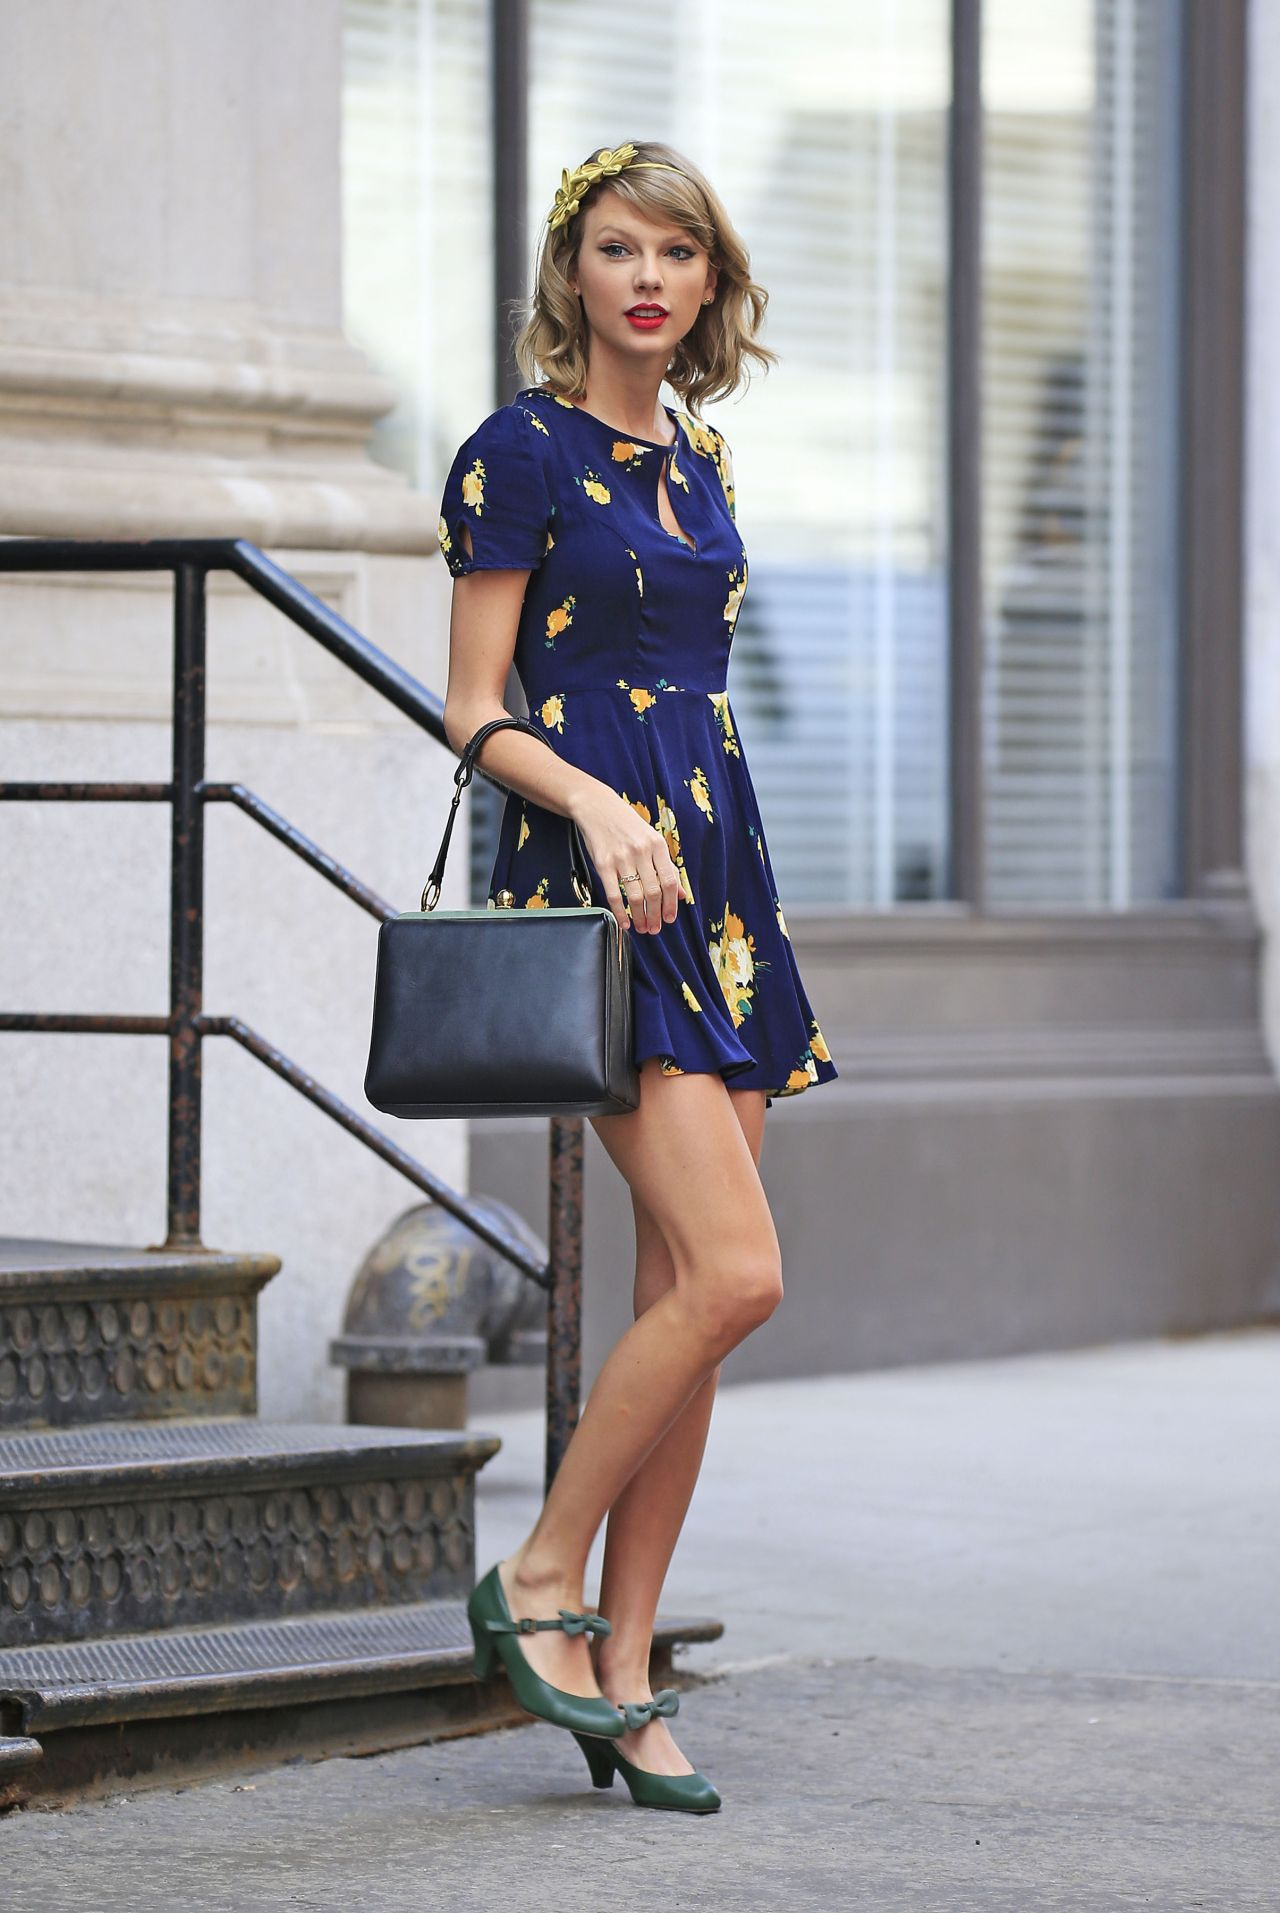 Taylor Swift In New York City Leaving Her Apartment